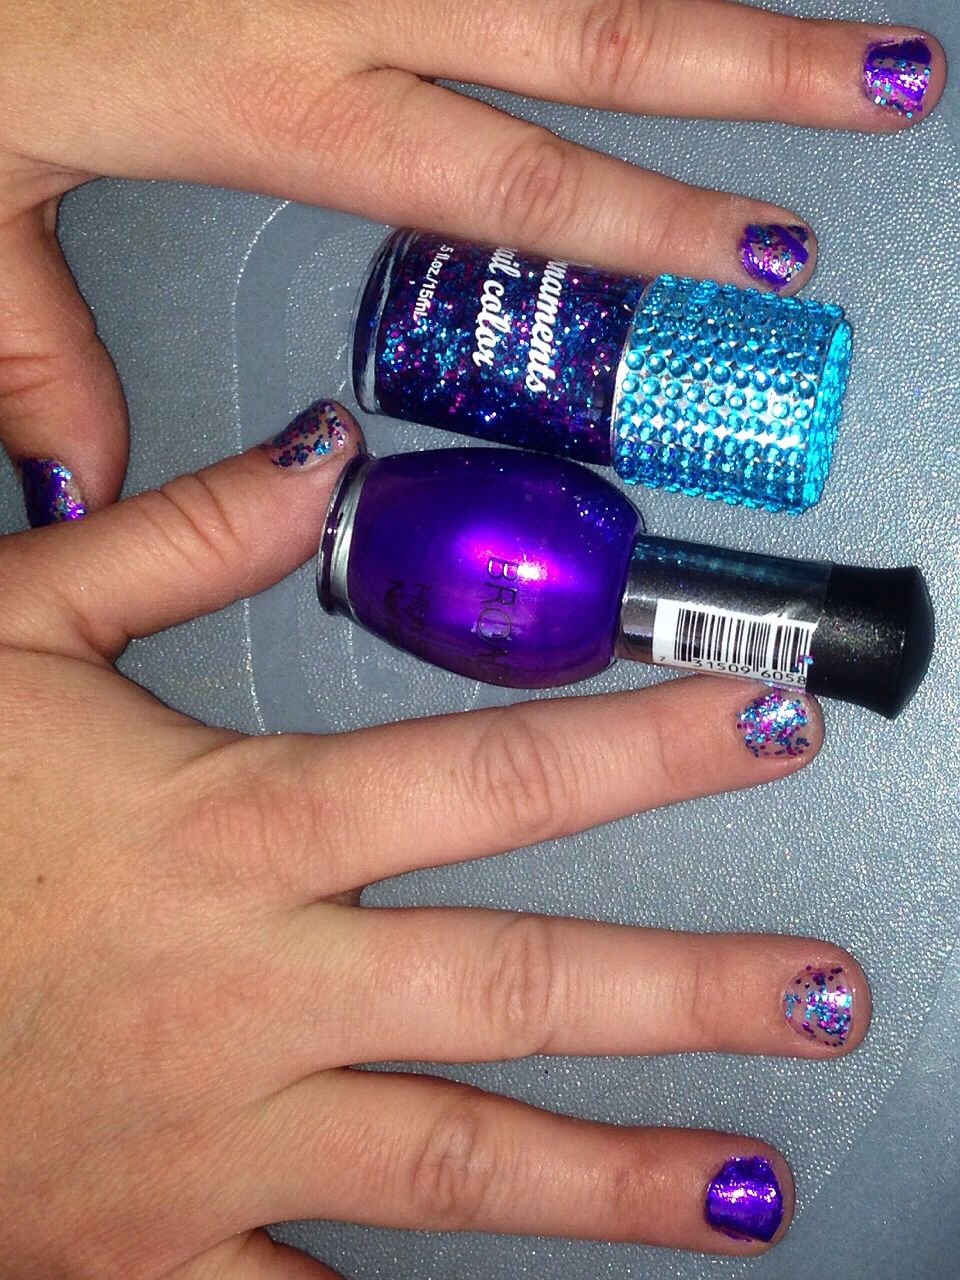 My Nails!  Purple and purple sparkles!